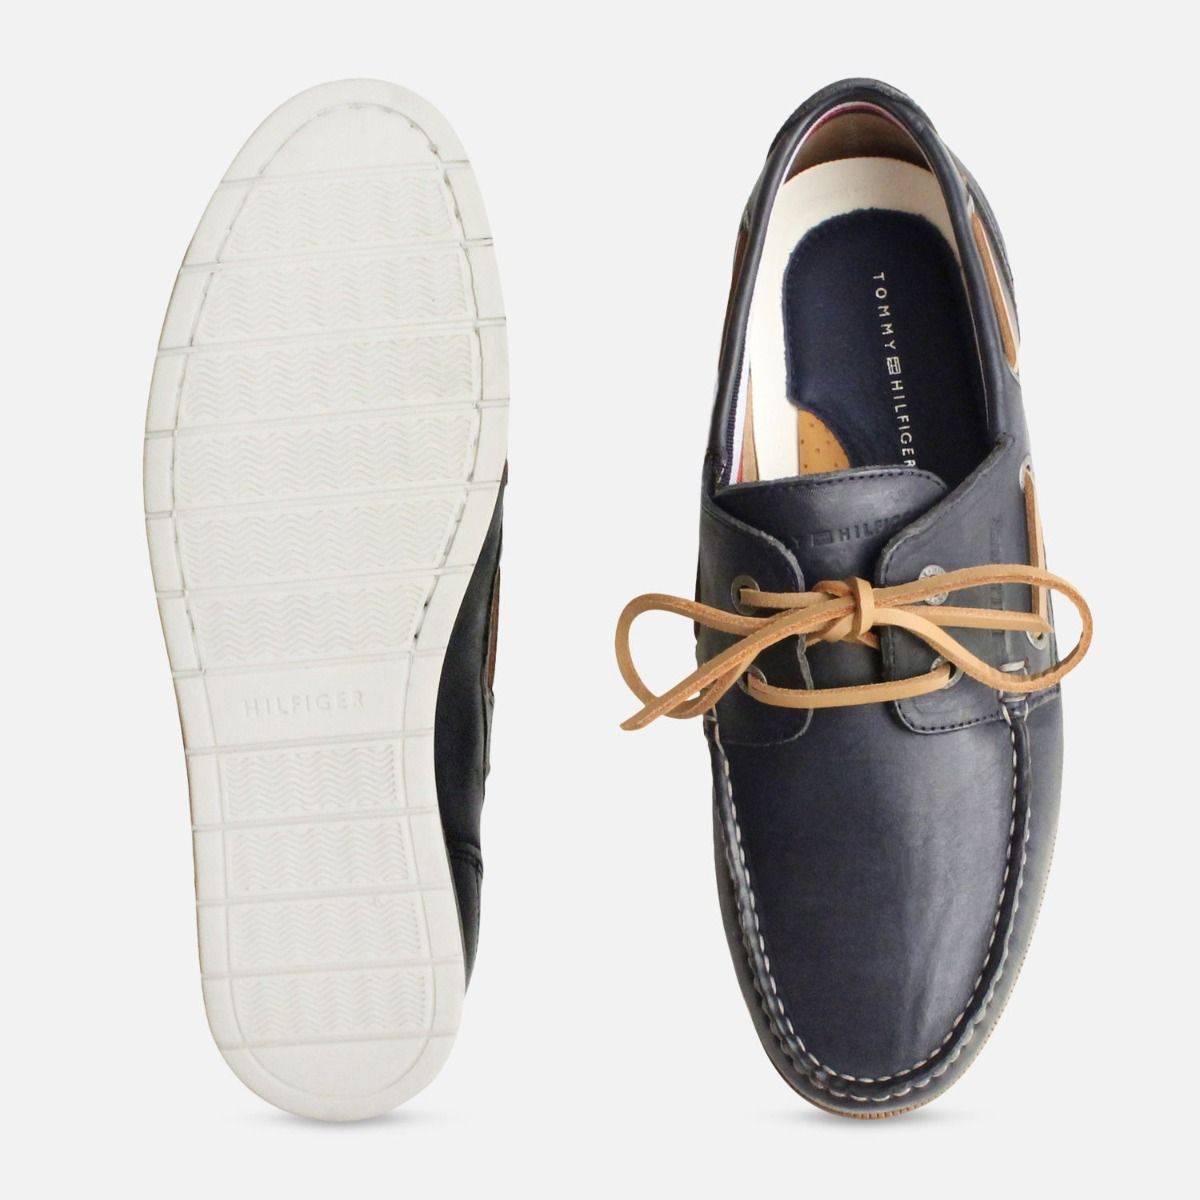 Tommy Hilfiger Navy Blue Lace Up Coast Boat Shoes